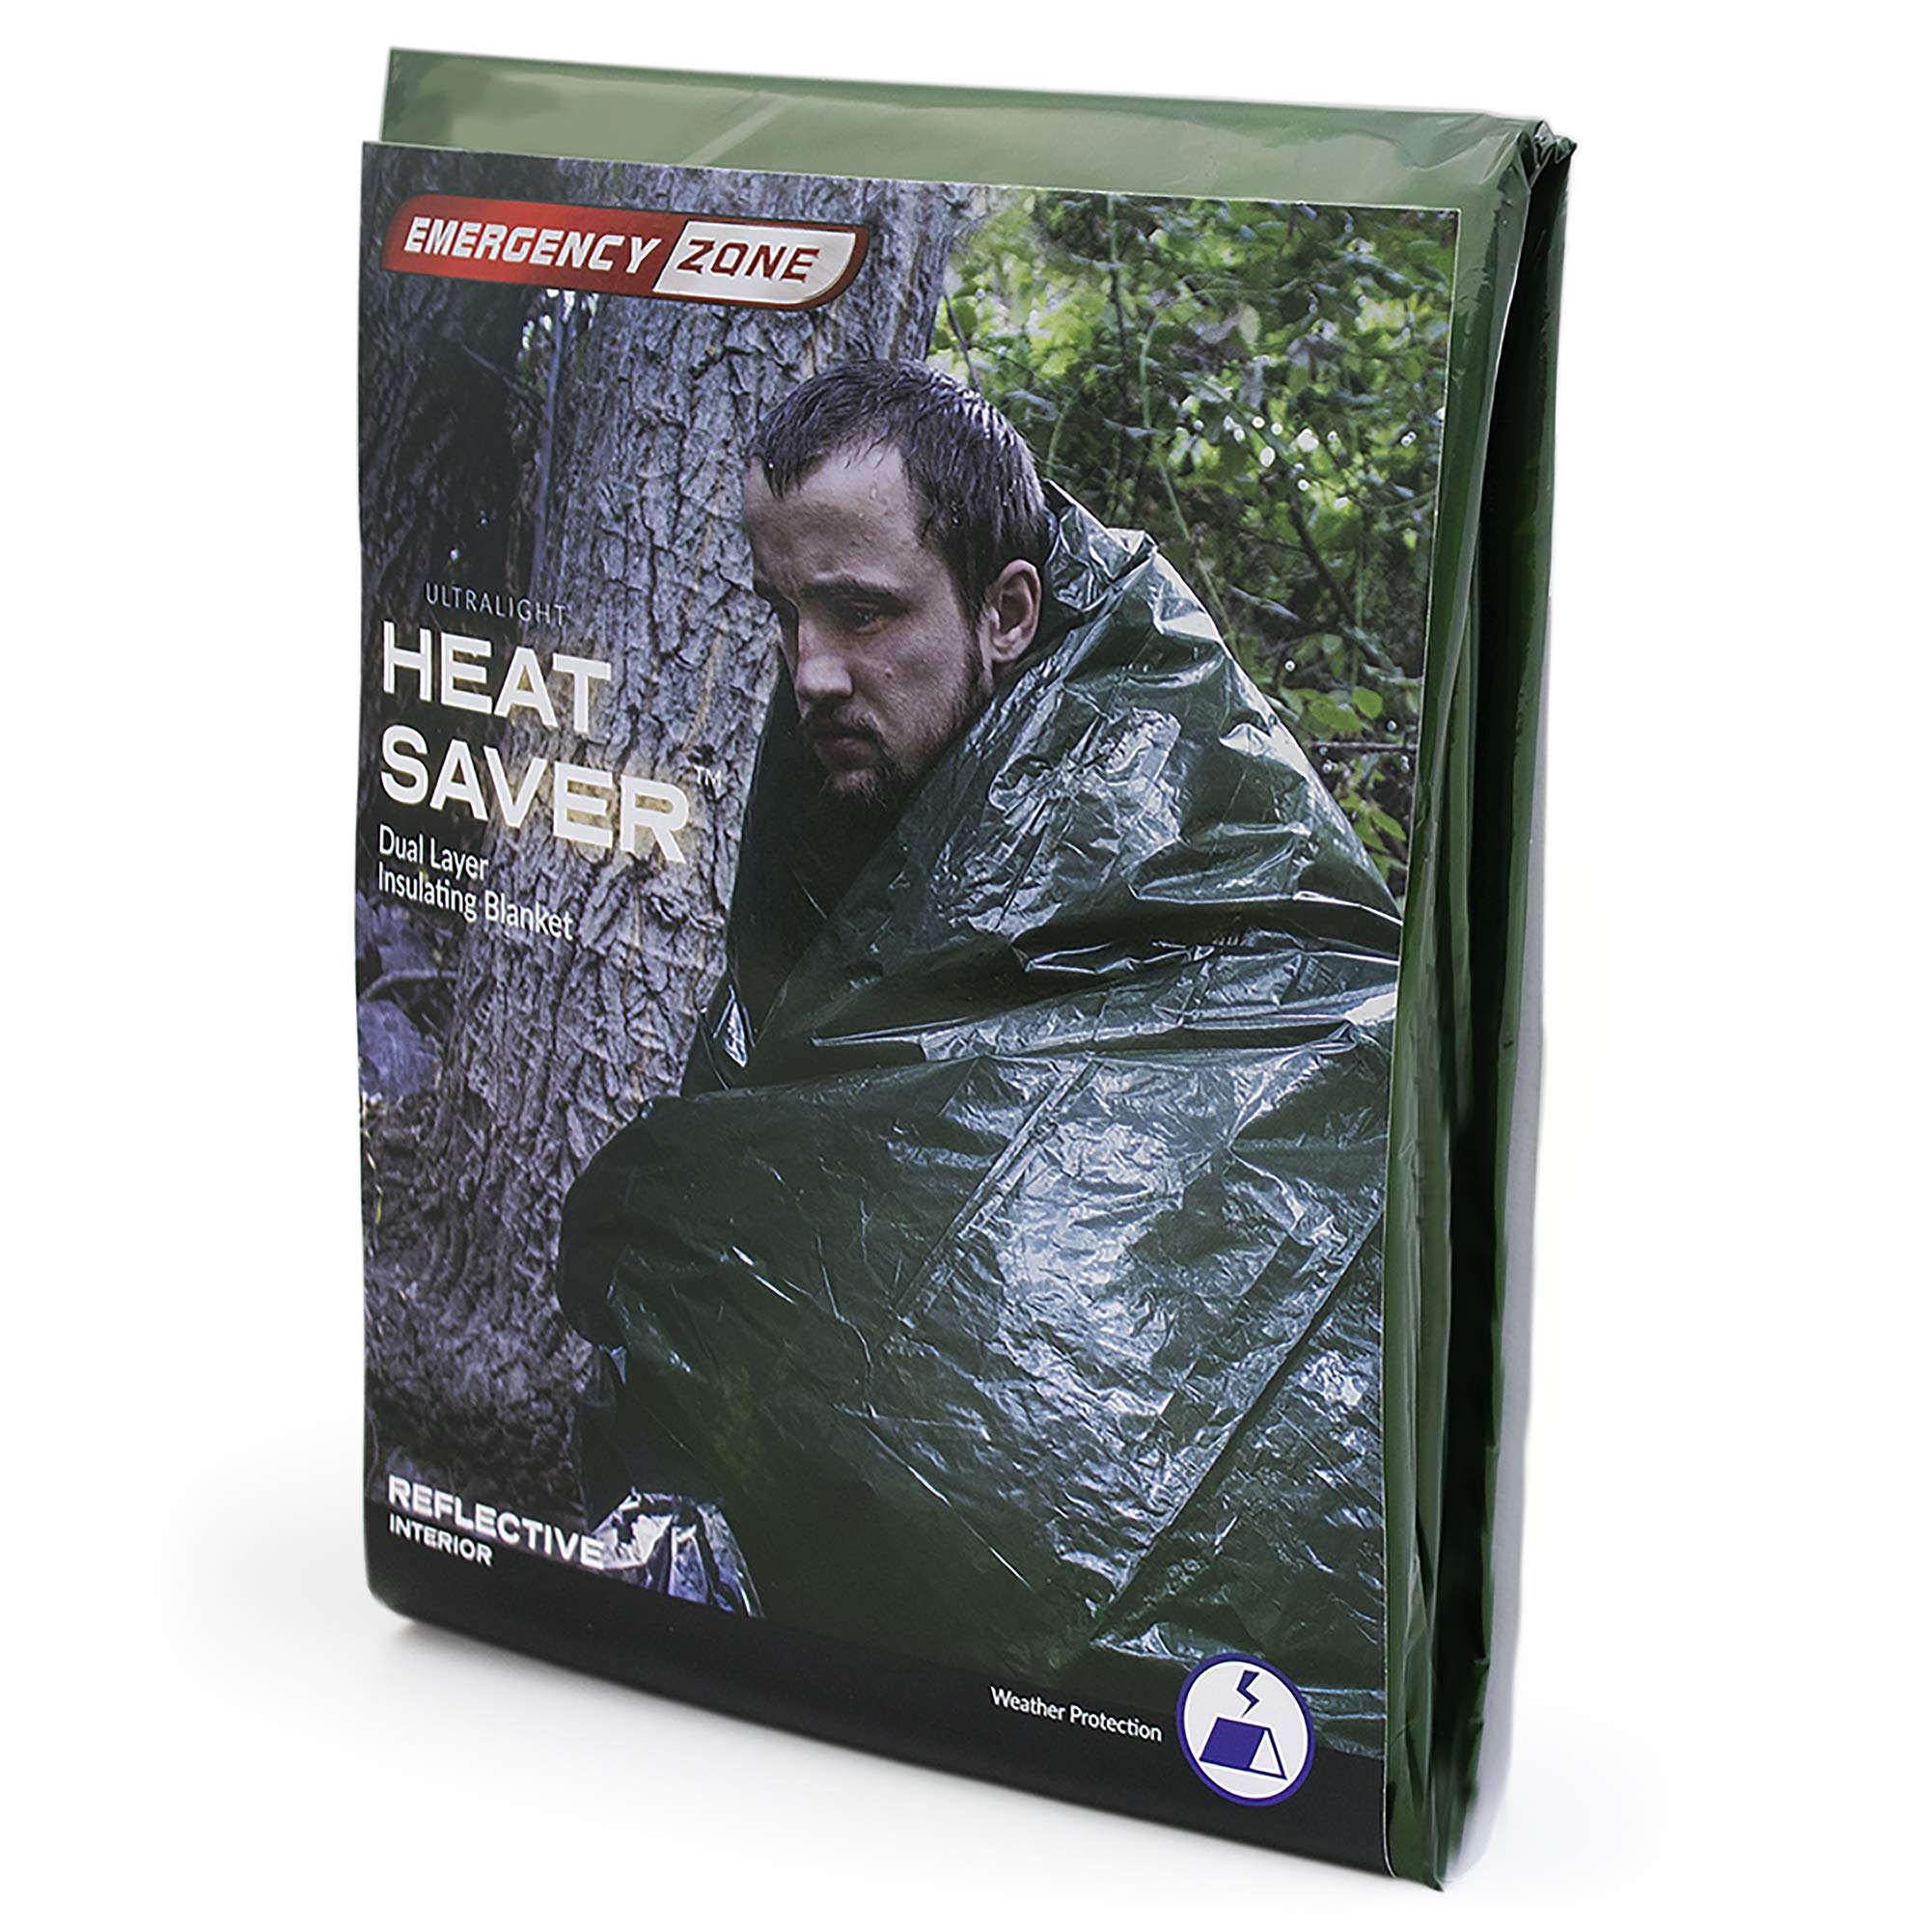 Emergency Zone Ultralight HeatSaver Dual Layer Insulating Emergency Blanket. 1 Pack by Emergency Zone (Image #1)